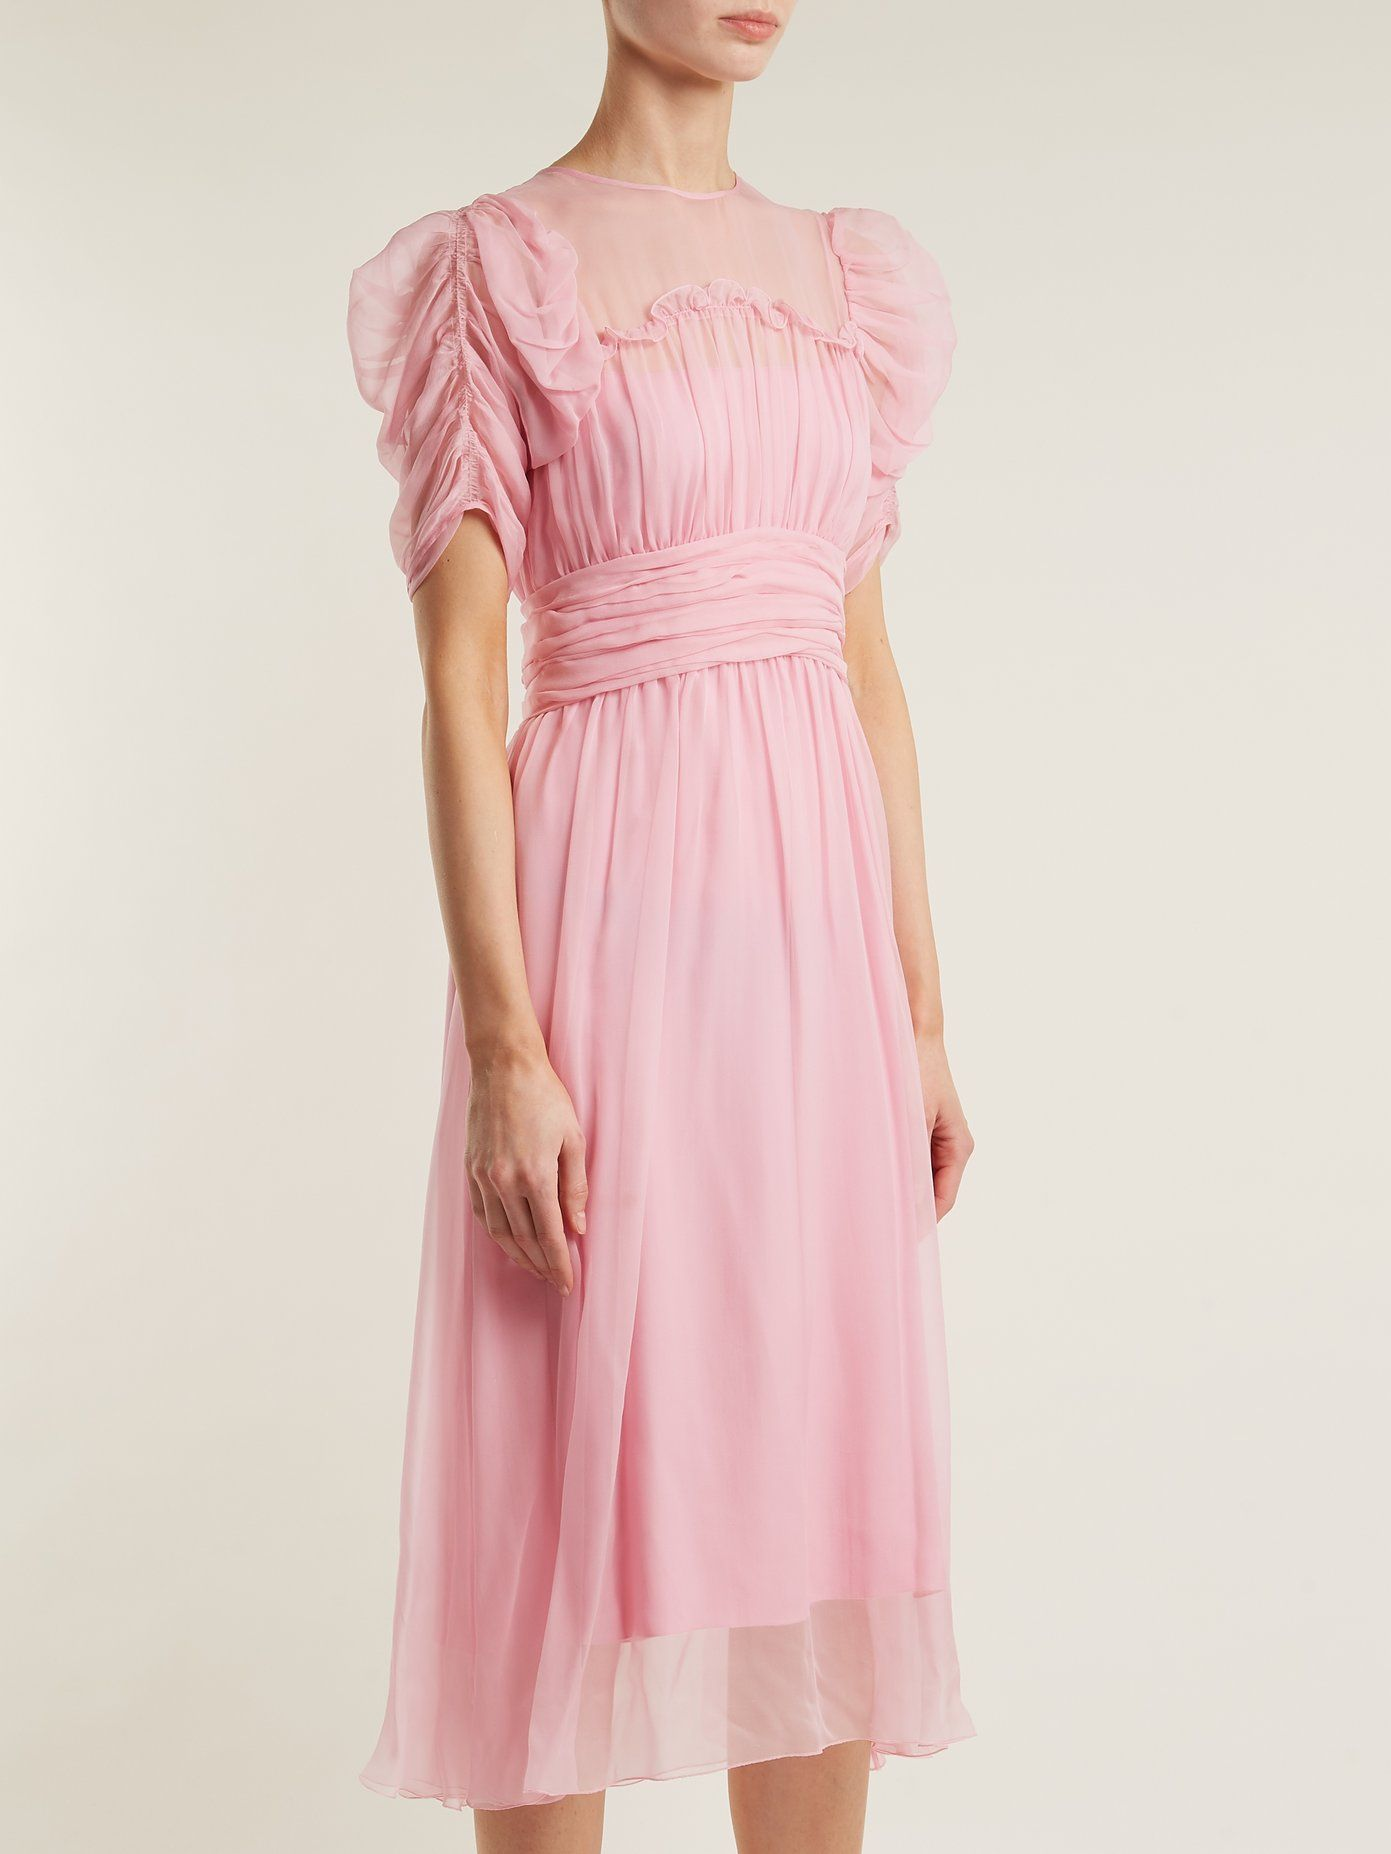 Gathered-sleeve silk-chiffon dress N</ototo></div>                                   <span></span>                               </div>             <div>                                     <div>                                             <div>                                                     <p>                                                           <small>                                 Buy direct SAVE! No Sales Tax to US Residents! FREE Priority shipping on US orders over $100!                             </small>                                                       </p>                                                 </div>                                         </div>                                     <div>                                             <div>                                                     <ul>                                                             <li>                                                               </li>                                                             <li>                                                                   <a href=